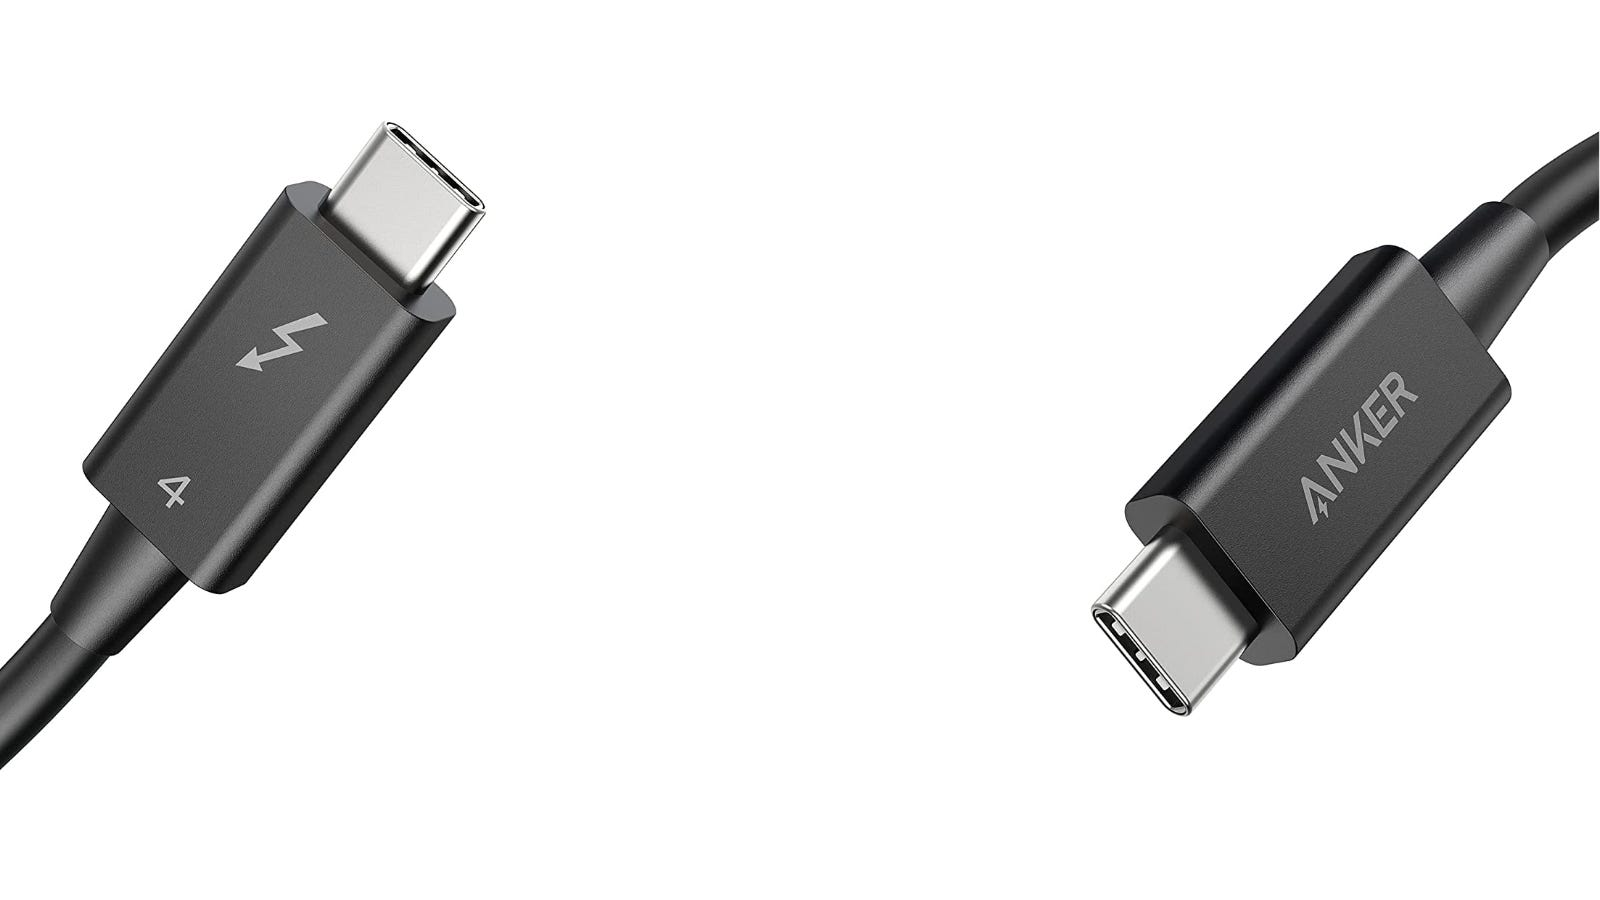 Anker USB-C to USB-C Video Cable